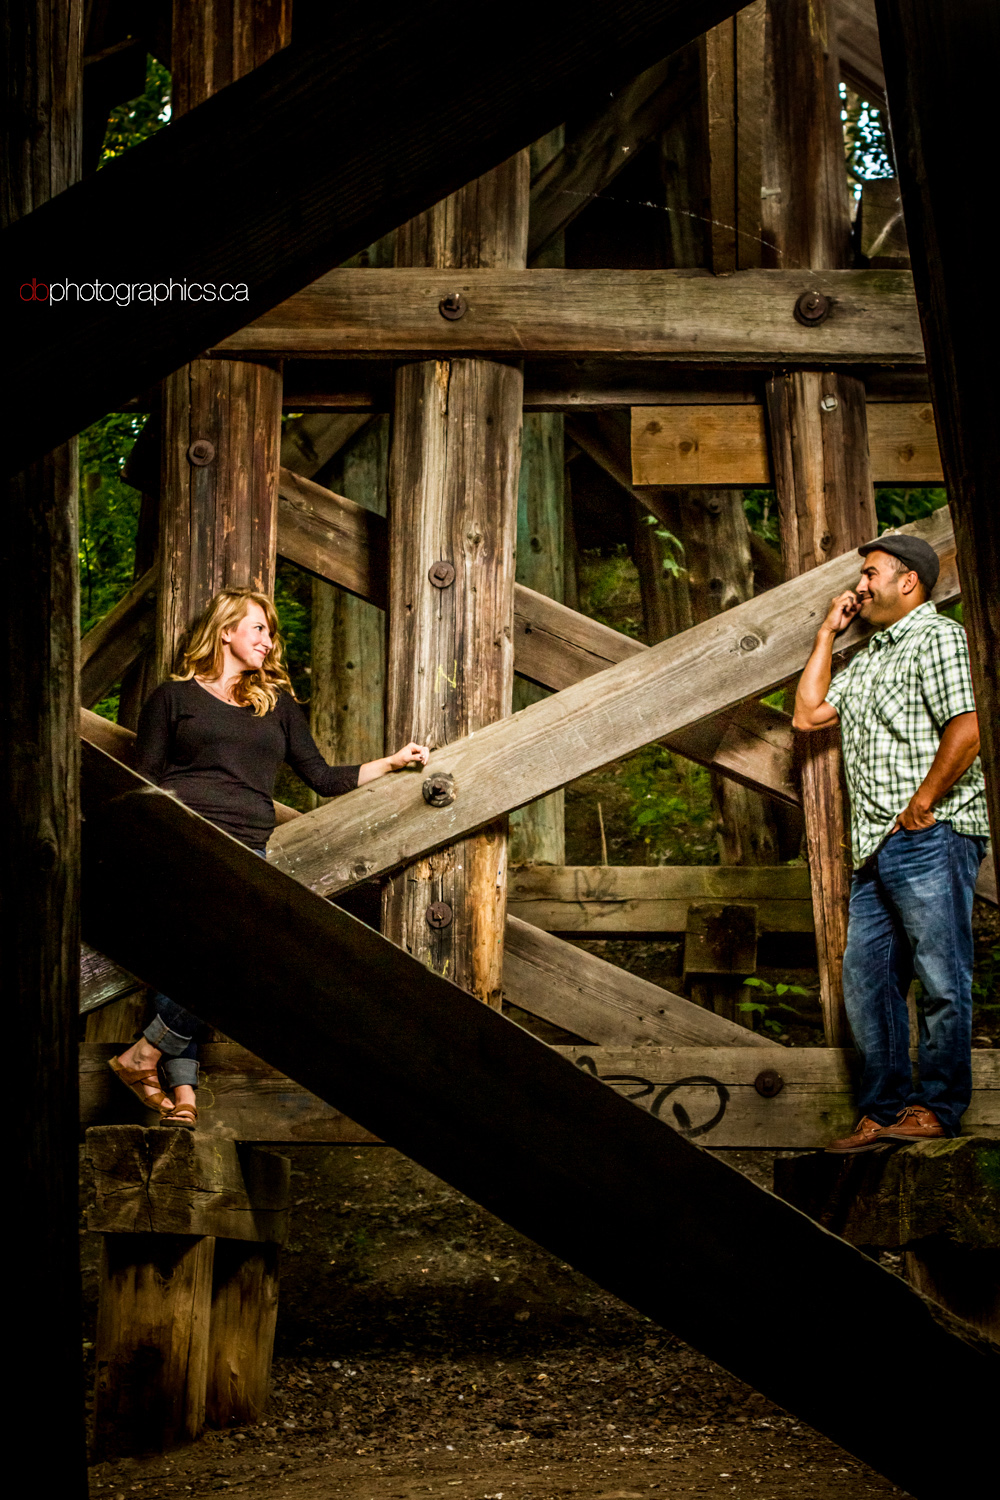 Amy & Ian Engagement Shoot - 20140626 - 0055.jpg